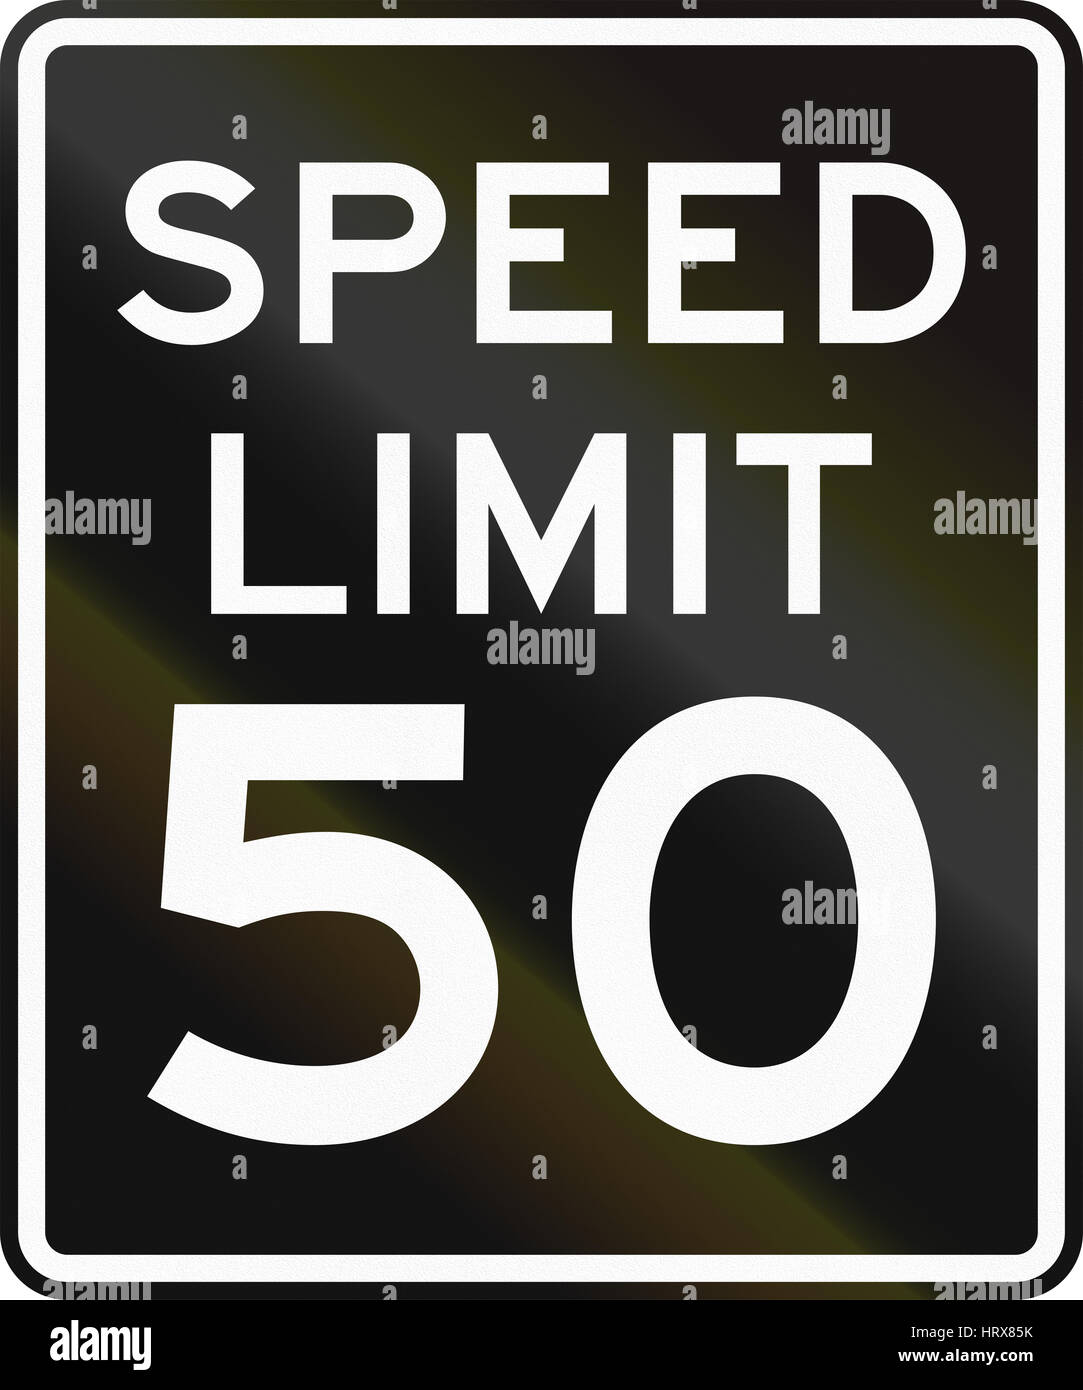 Speed limit road sign in the United States with black background and white symbols. Stock Photo